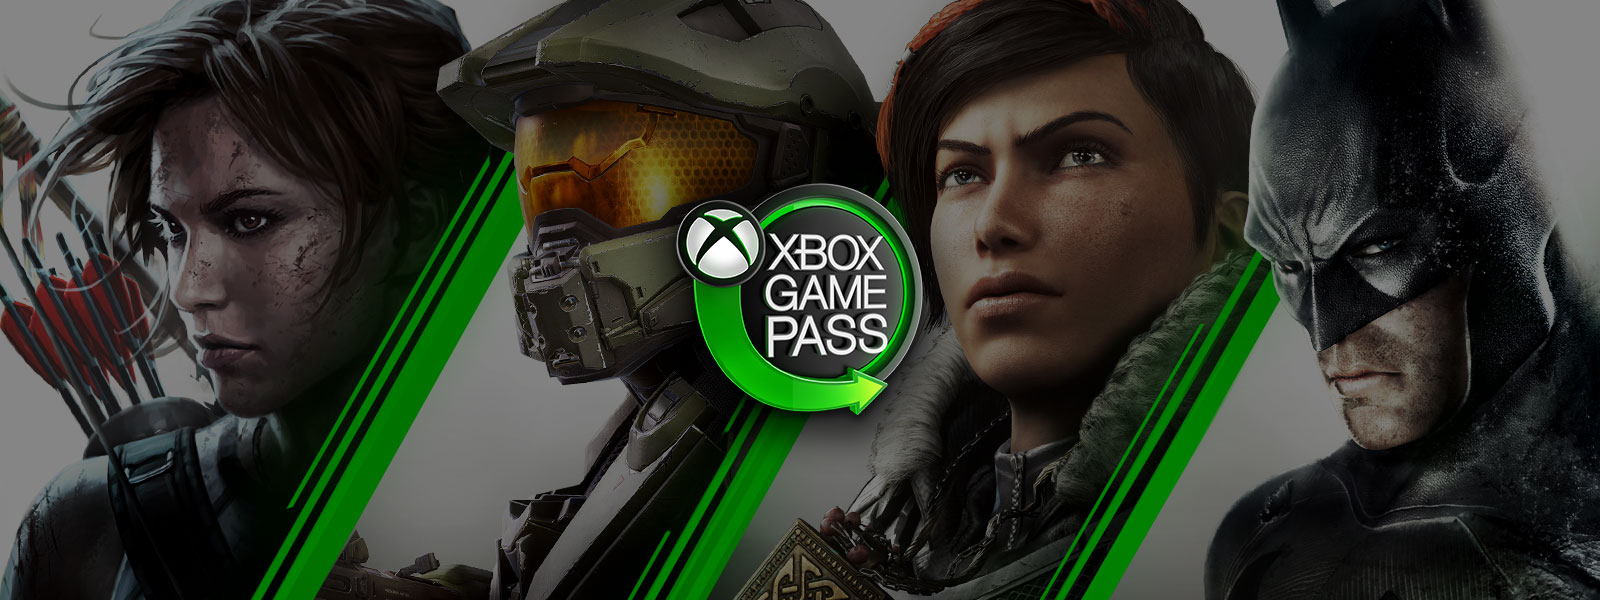 Logótipo do Xbox Game Pass rodeado por personagens participantes